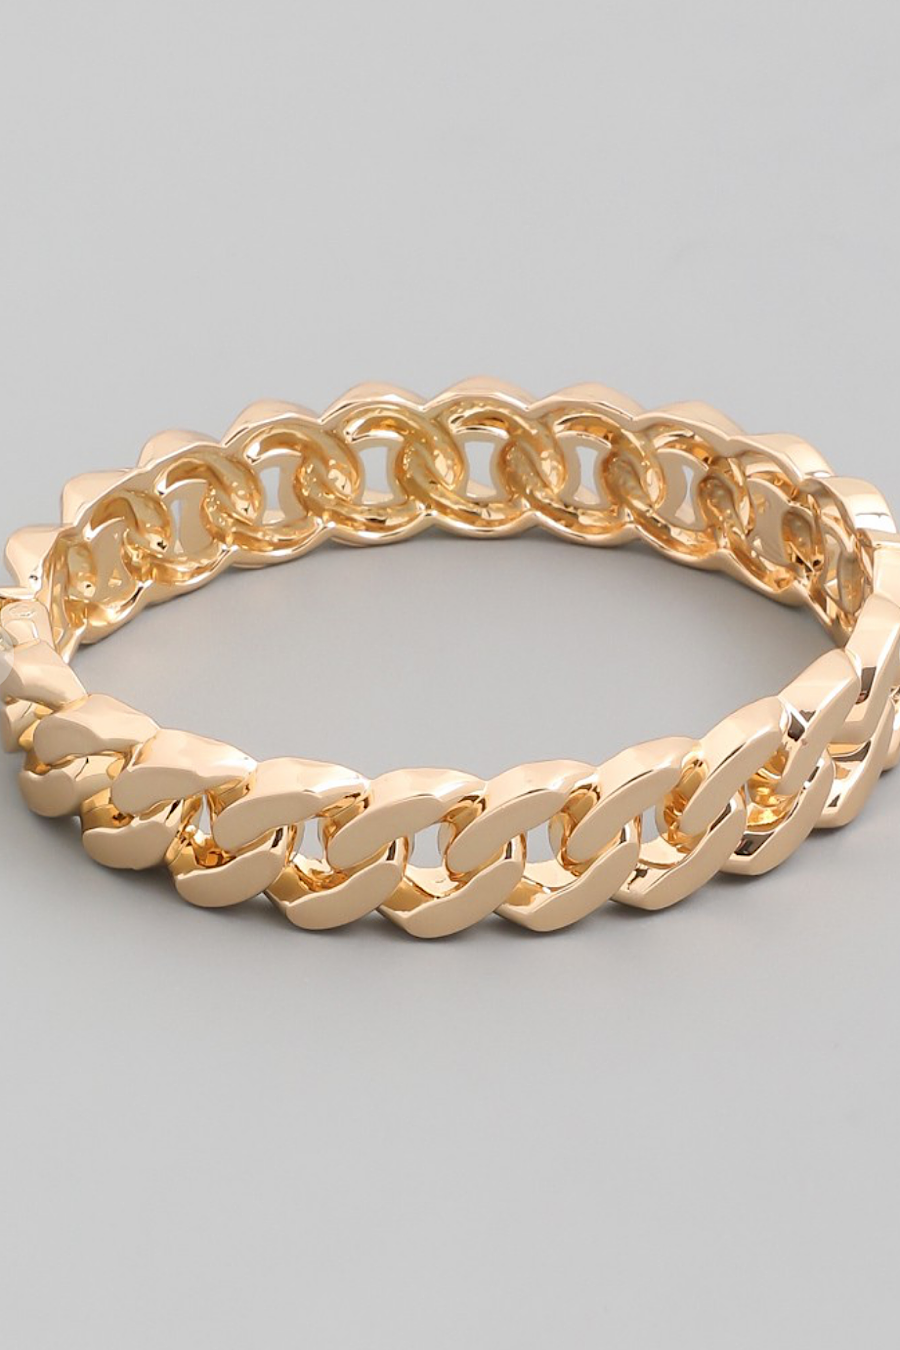 Chain Link Bangle Bracelet in Silver or Gold